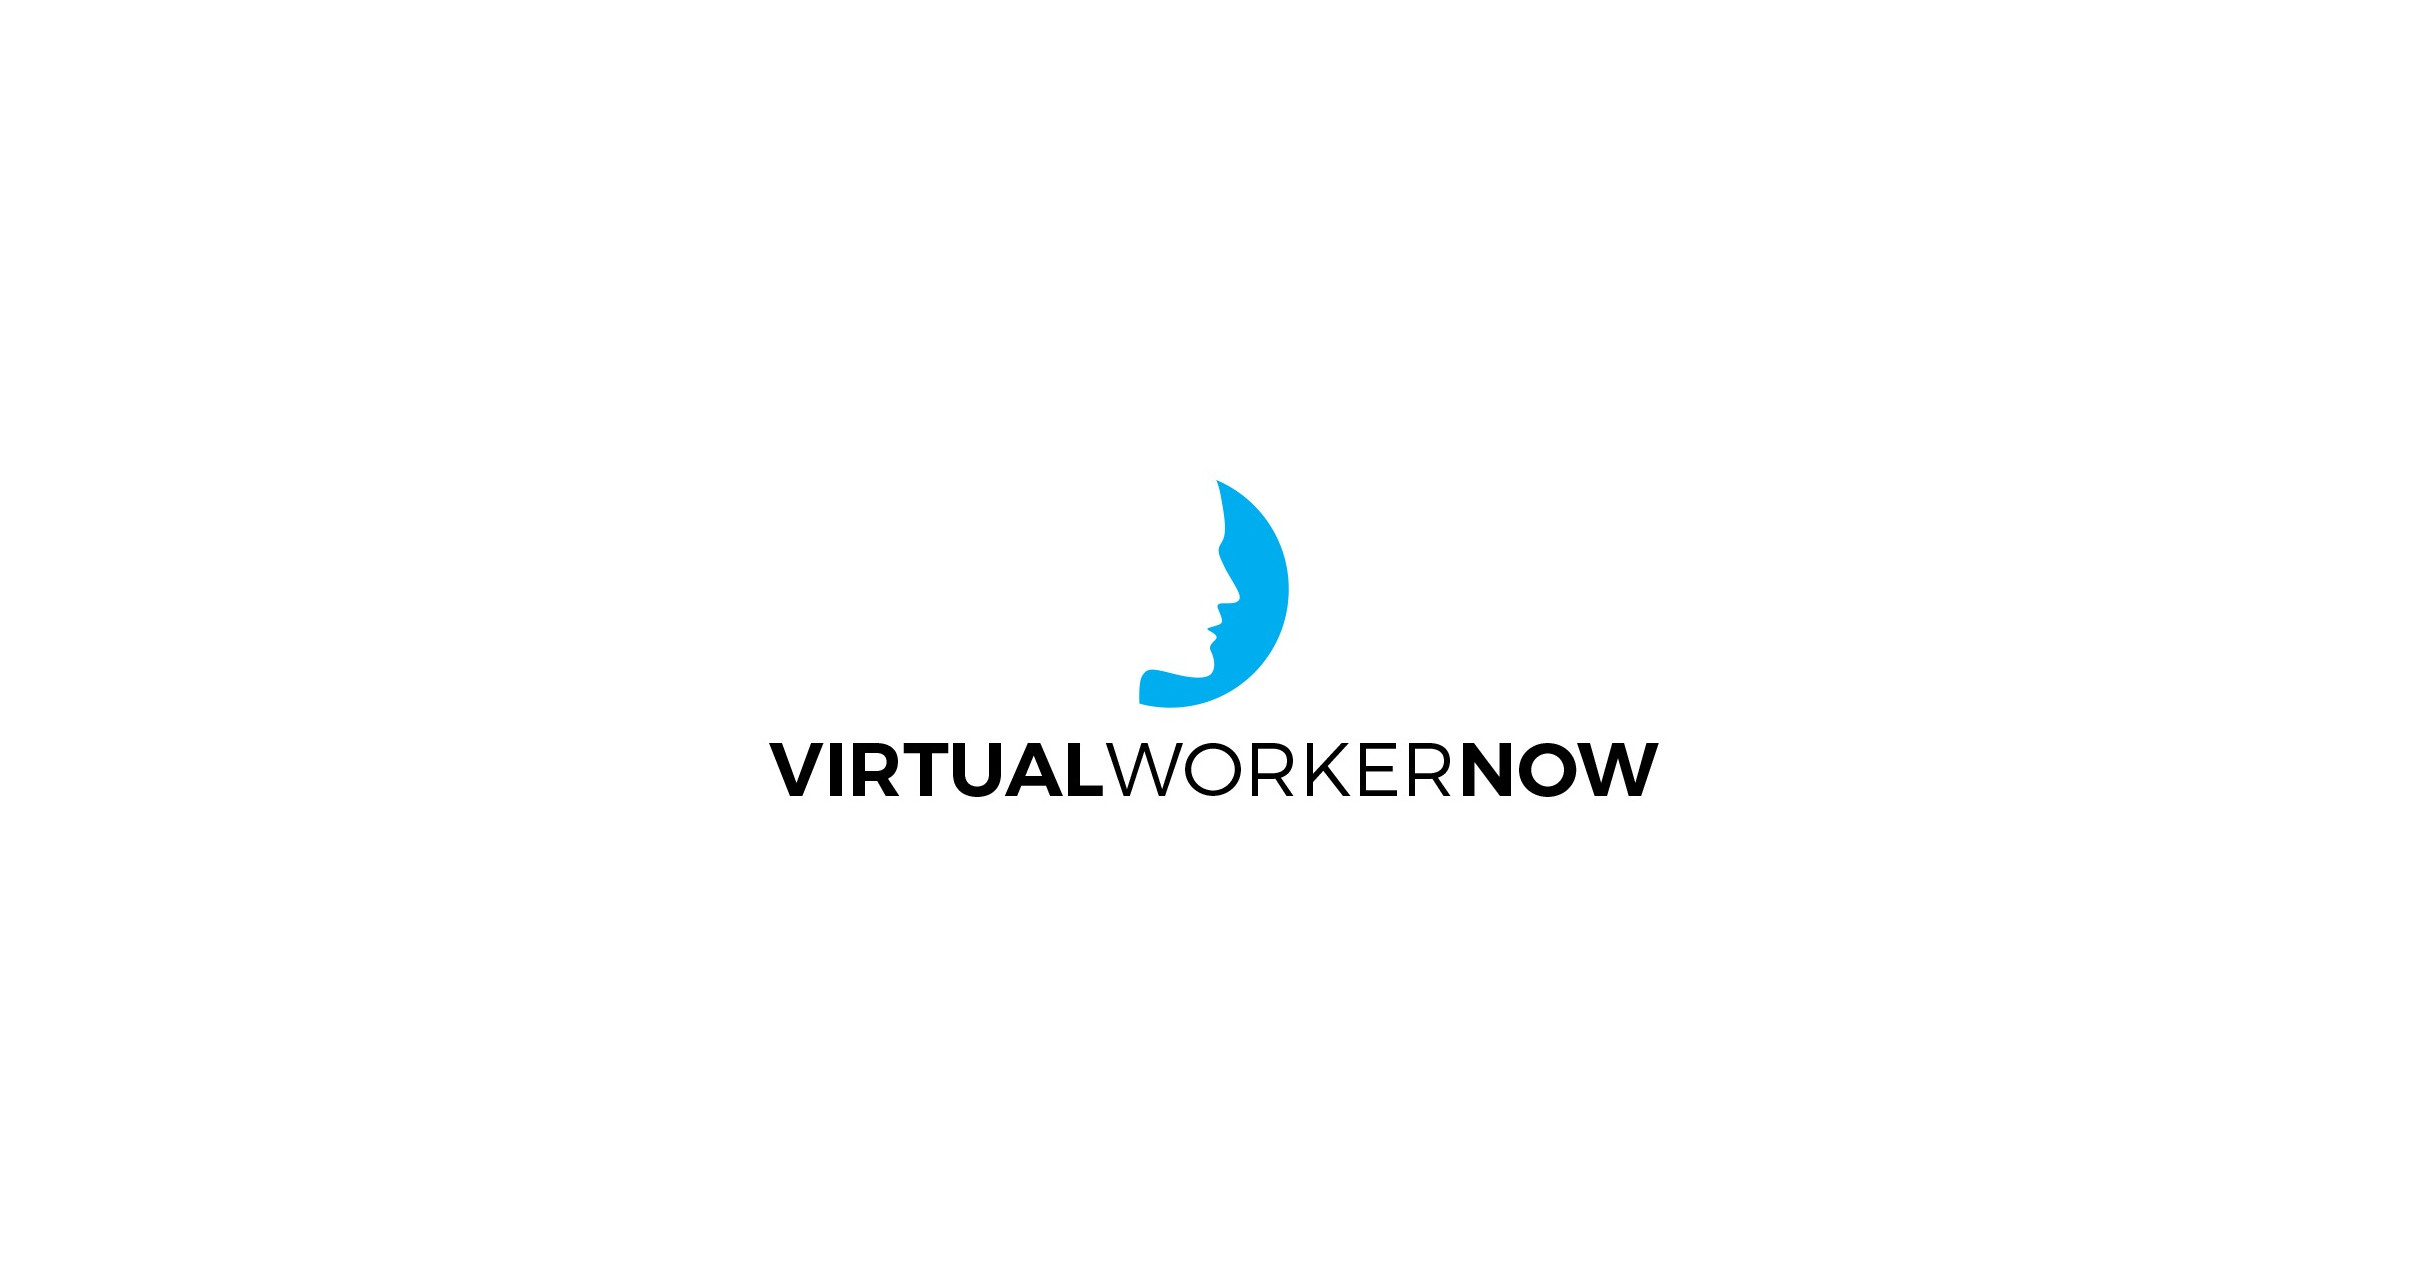 صورة Job: Social Media Moderator at Virtual Worker Now in Cairo, Egypt